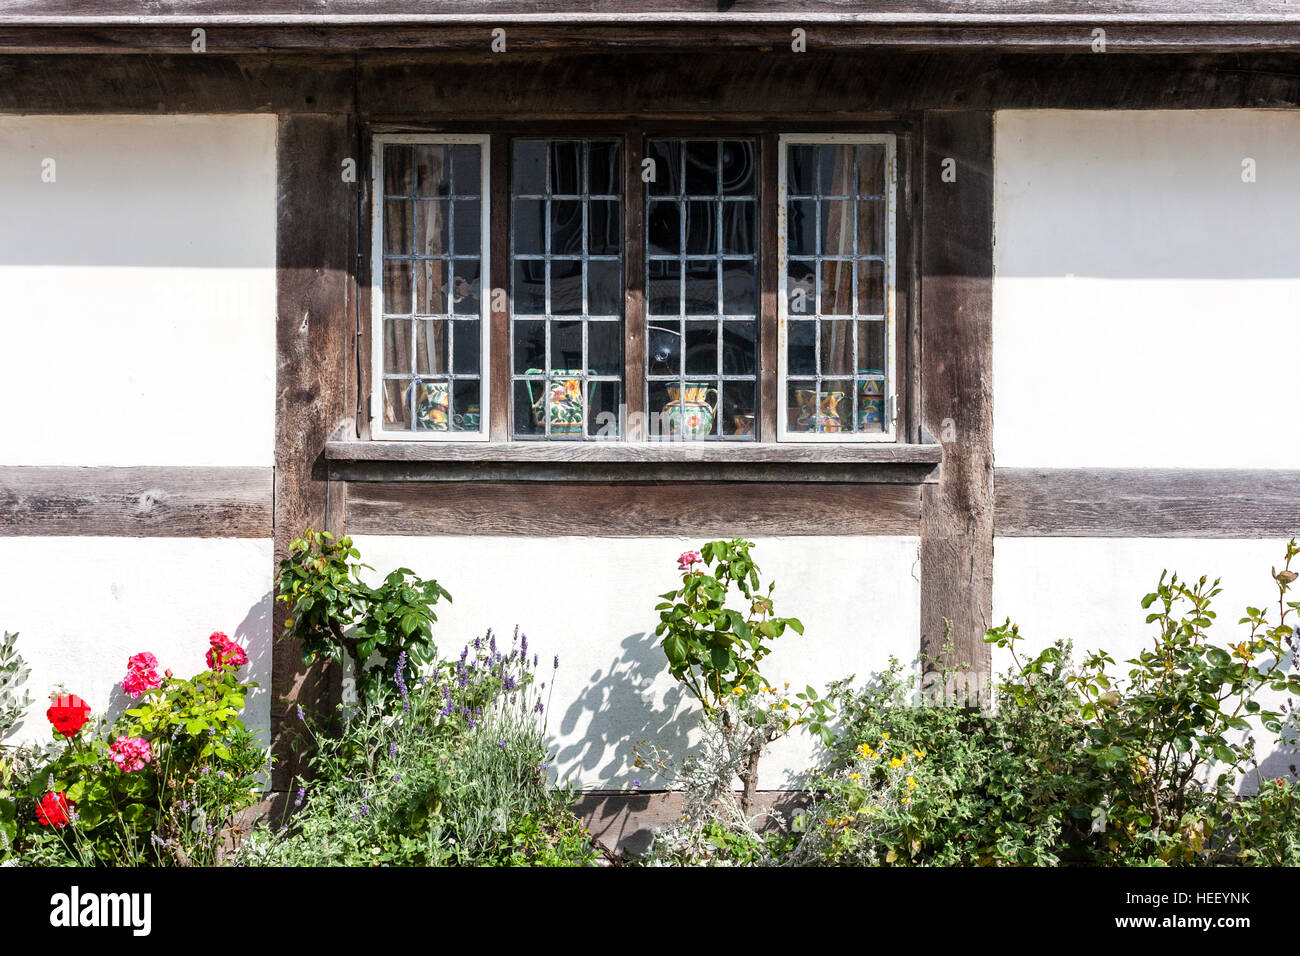 Typical 16th century house wood framed window, f St Anthony's timber framed late medieval Tudor wealthy merchant's - Stock Image